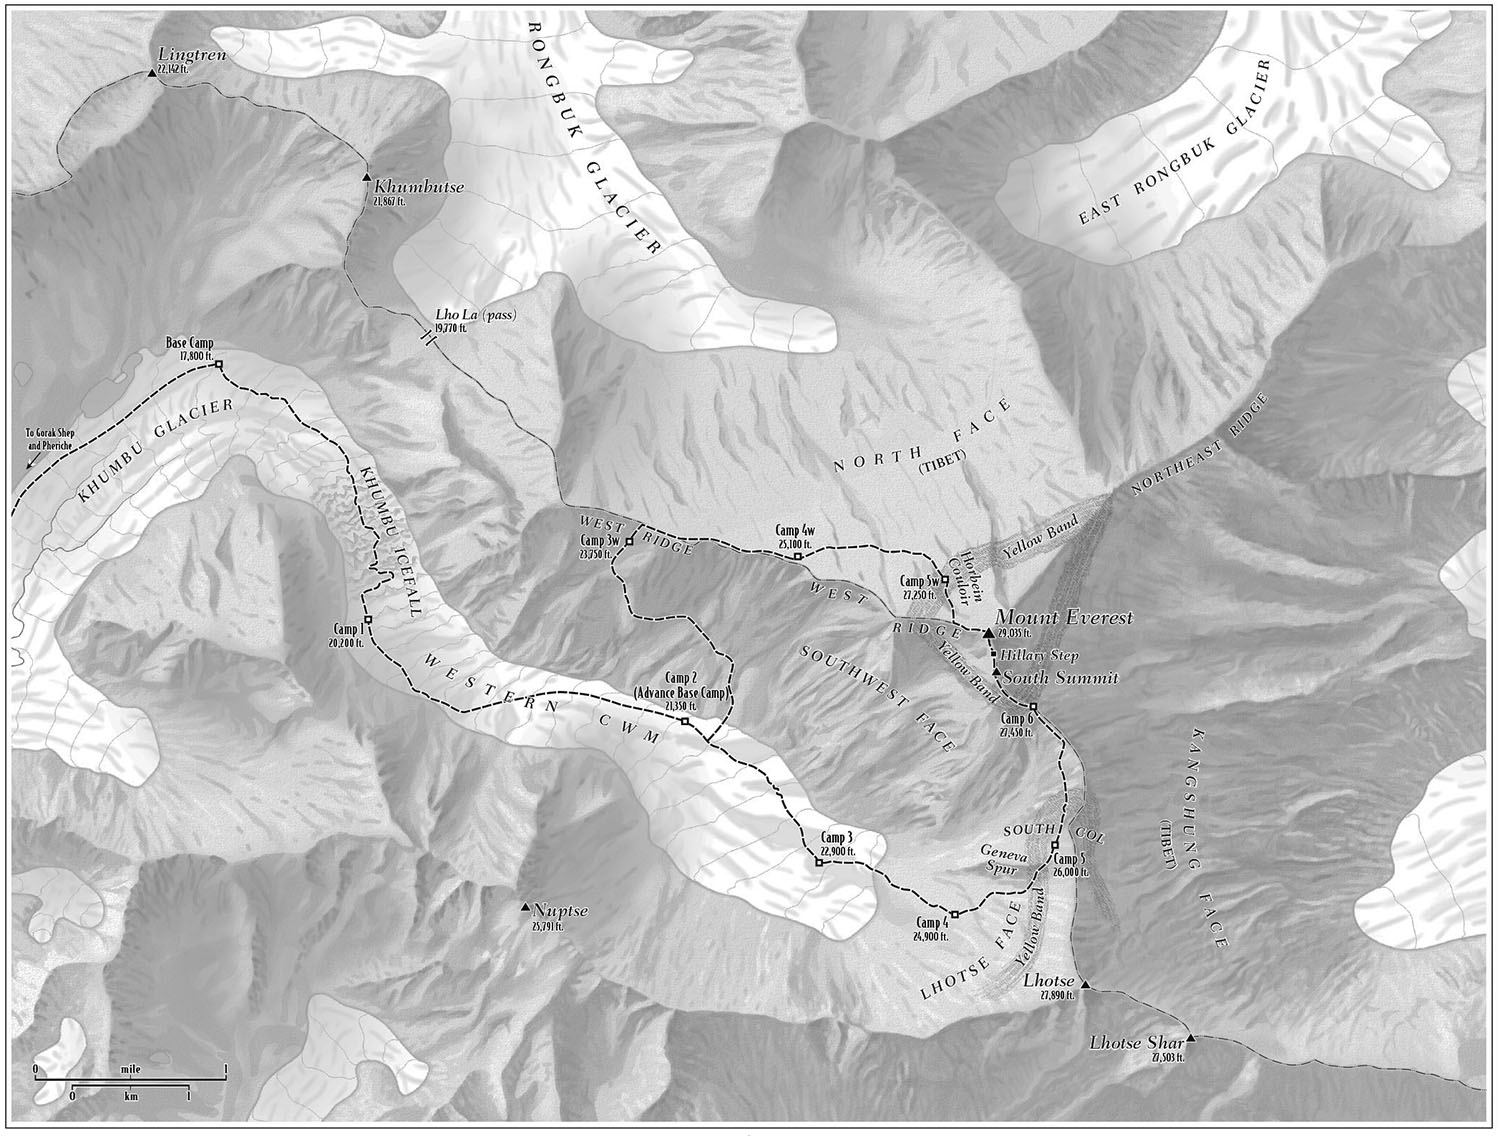 For    The Vast Unknown: Americas First Ascent of Everest, by Broughton Coburn  (Crown 2013). Map © Broughton Coburn.